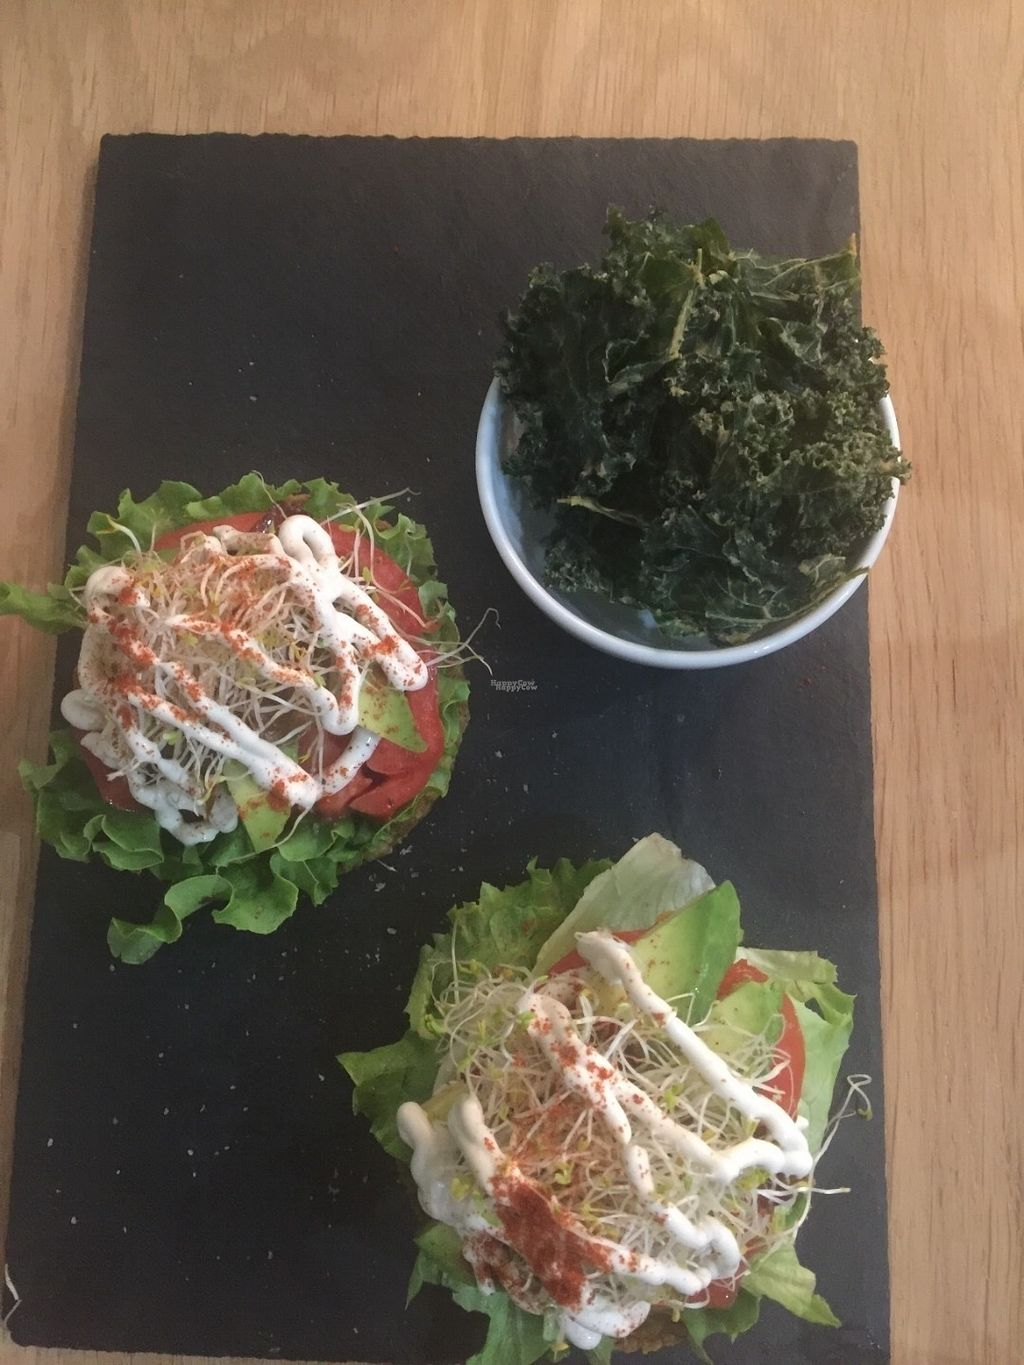 """Photo of KOKO Green  by <a href=""""/members/profile/FarleyD"""">FarleyD</a> <br/>Raw bagel + kale chips  <br/> September 9, 2016  - <a href='/contact/abuse/image/75042/174494'>Report</a>"""